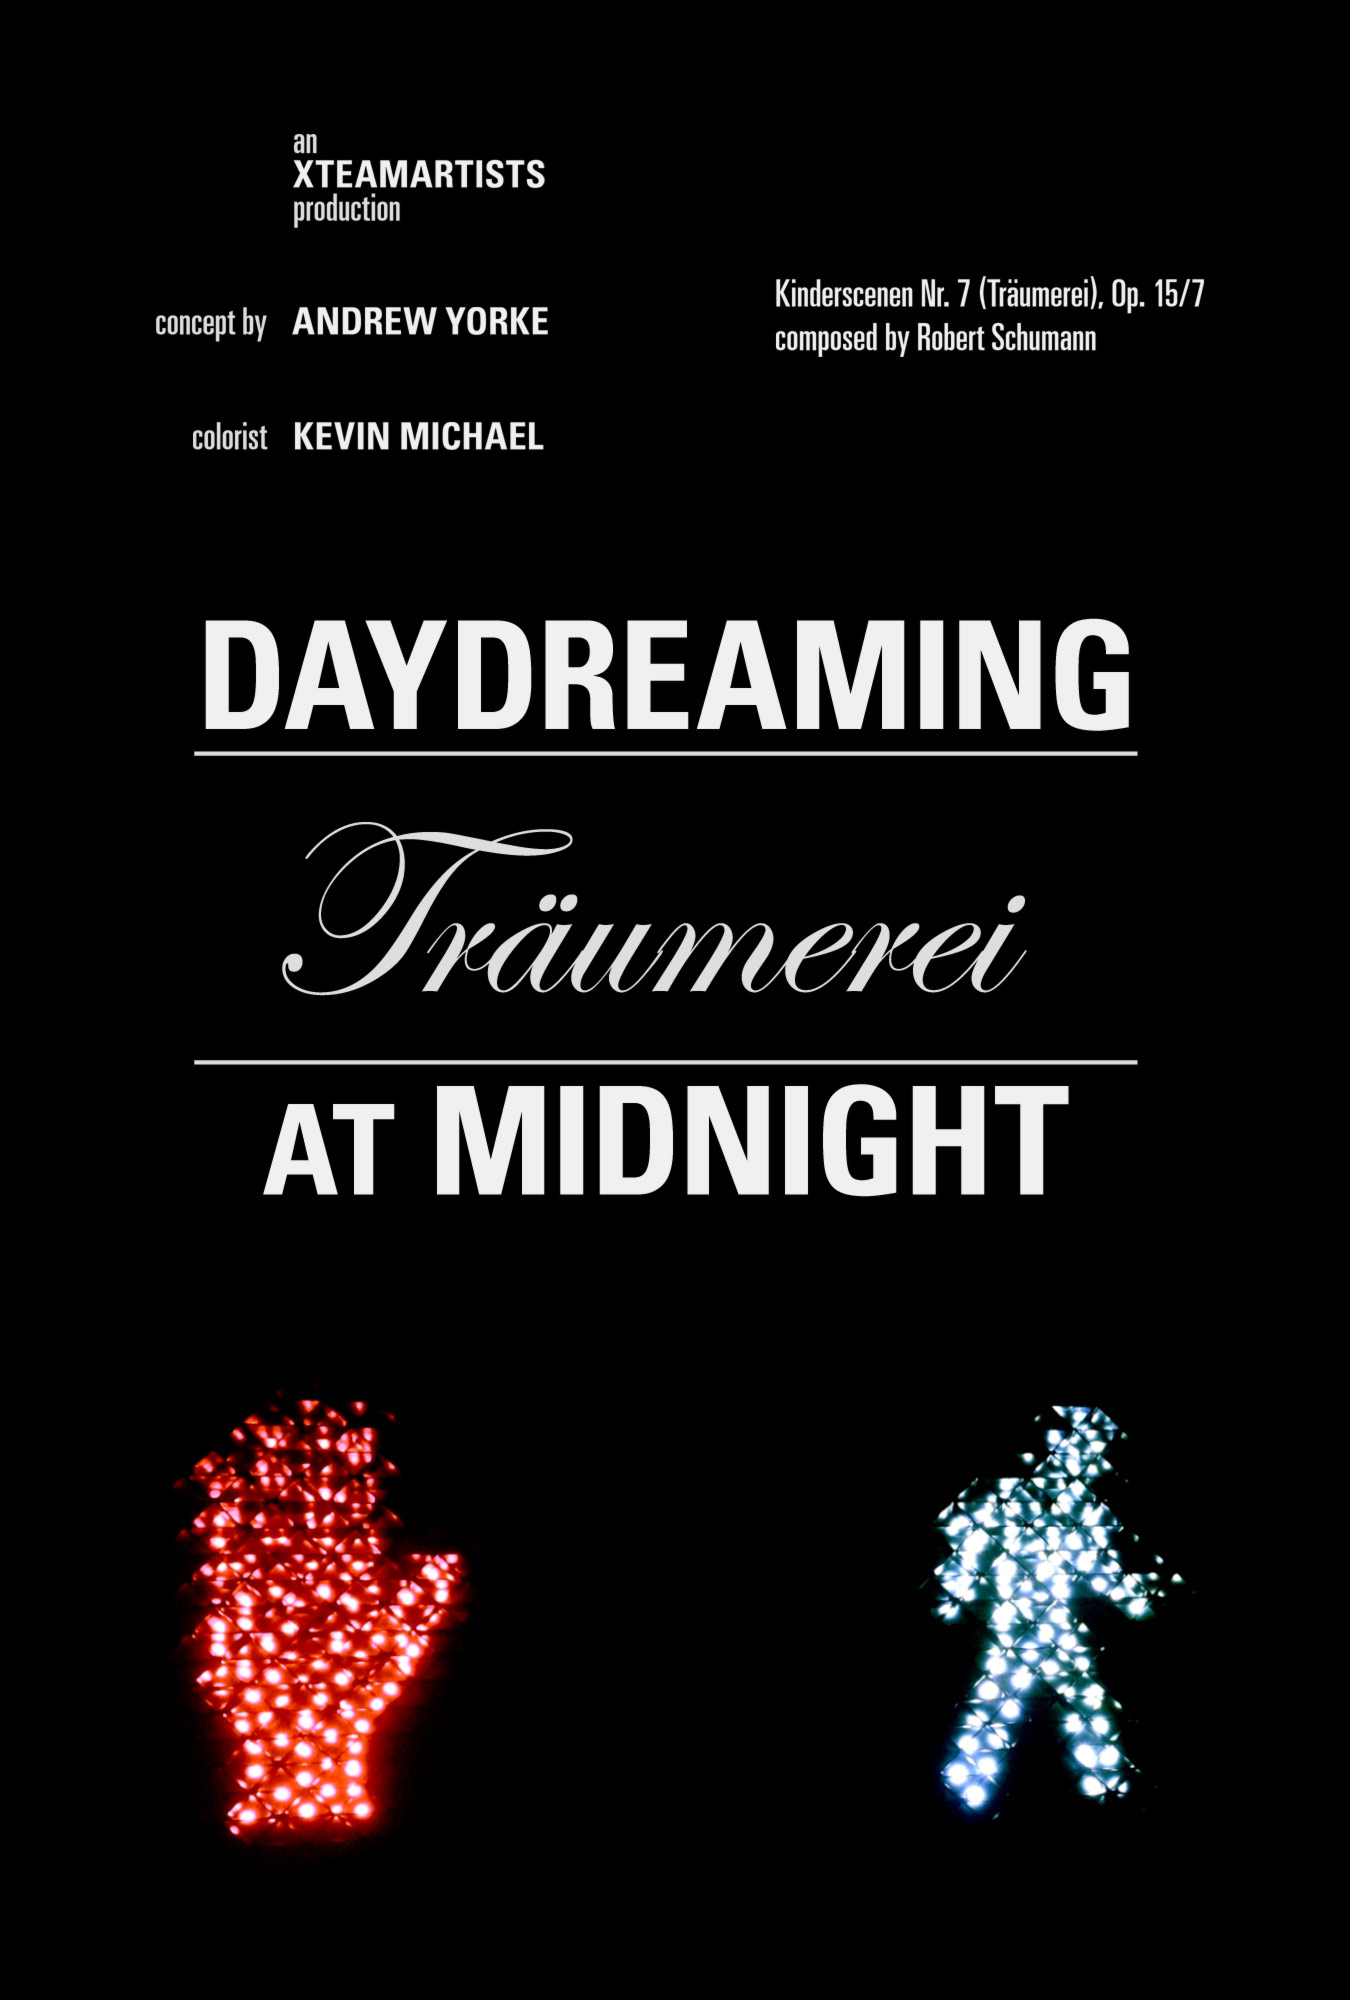 Daydreaming at Midnight poster; directed by Andrew Yorke